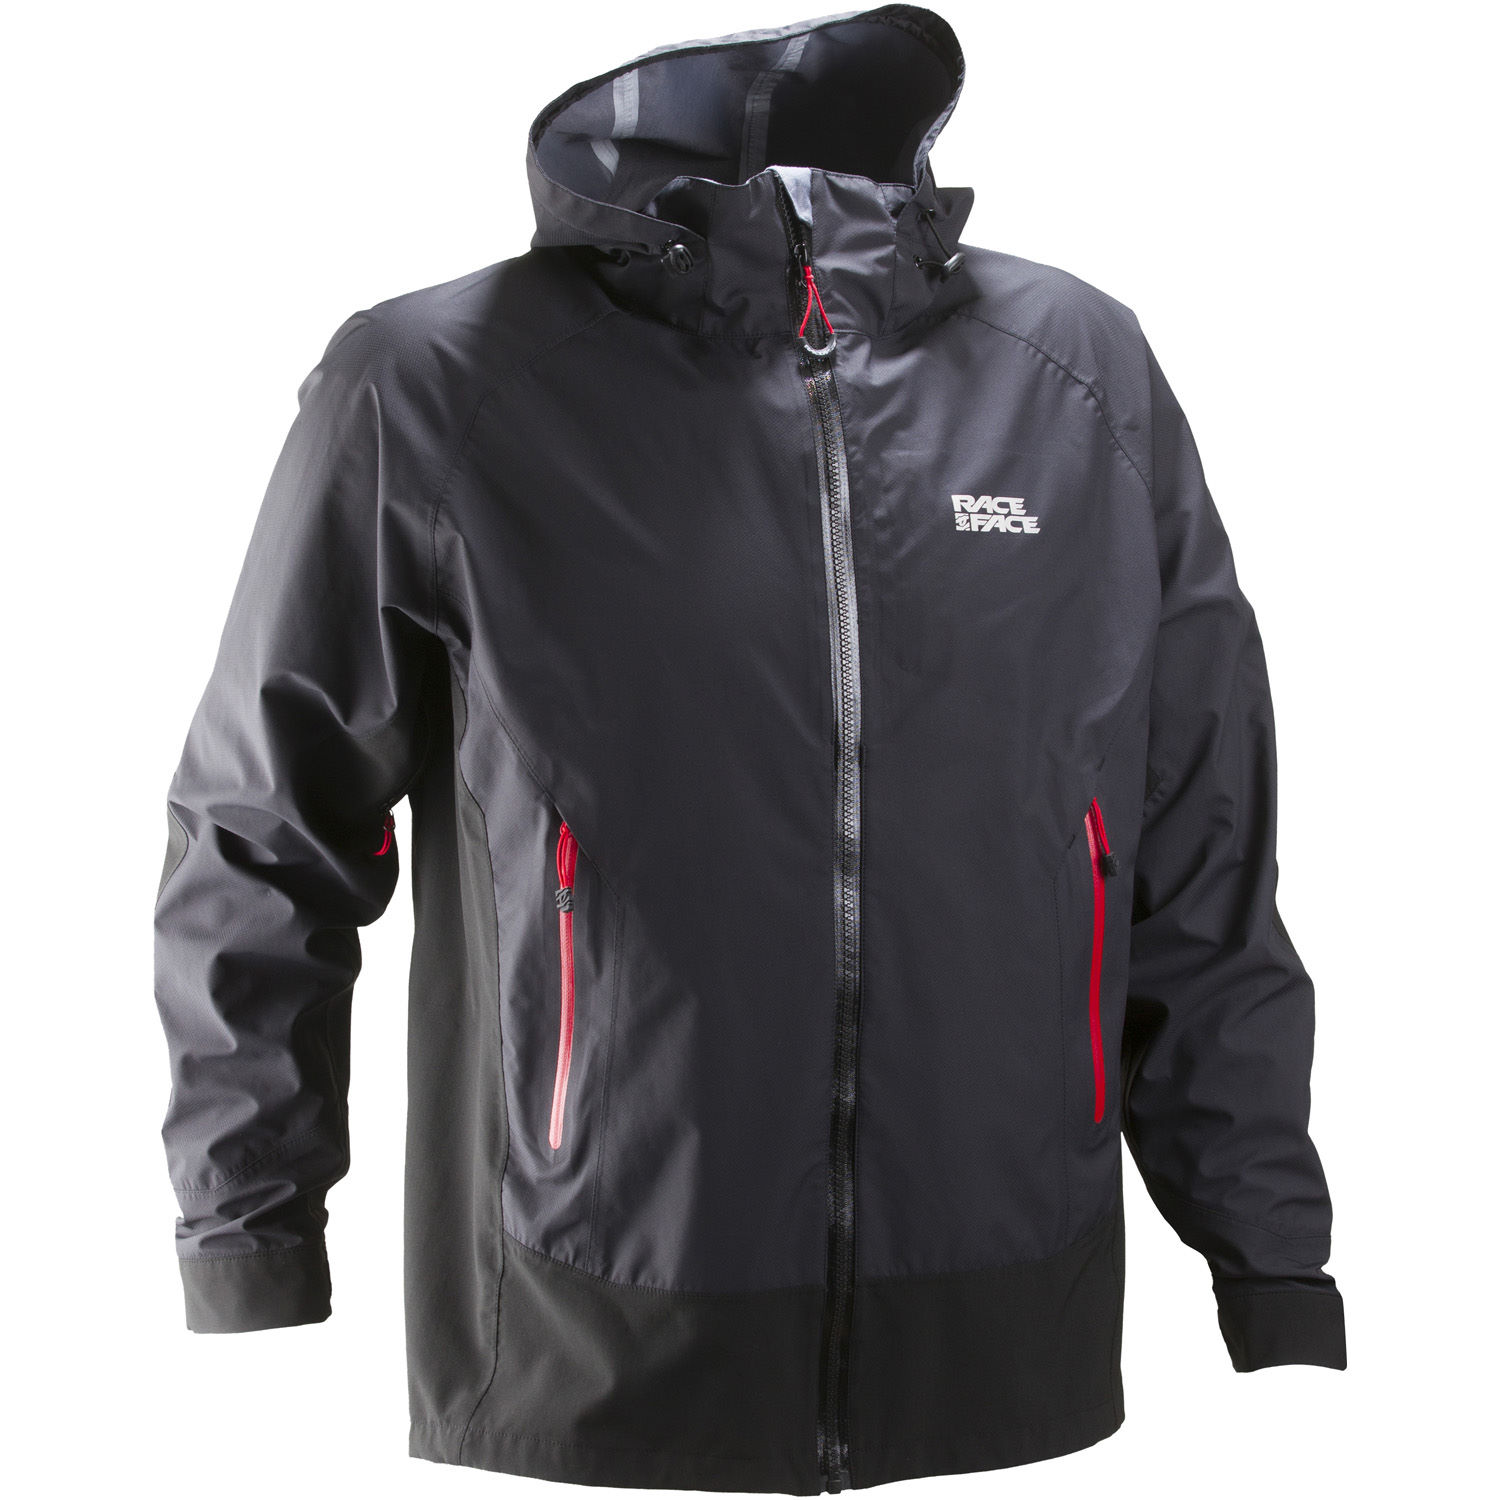 Wiggle | Race Face Chute Waterproof Jacket | Cycling Waterproof